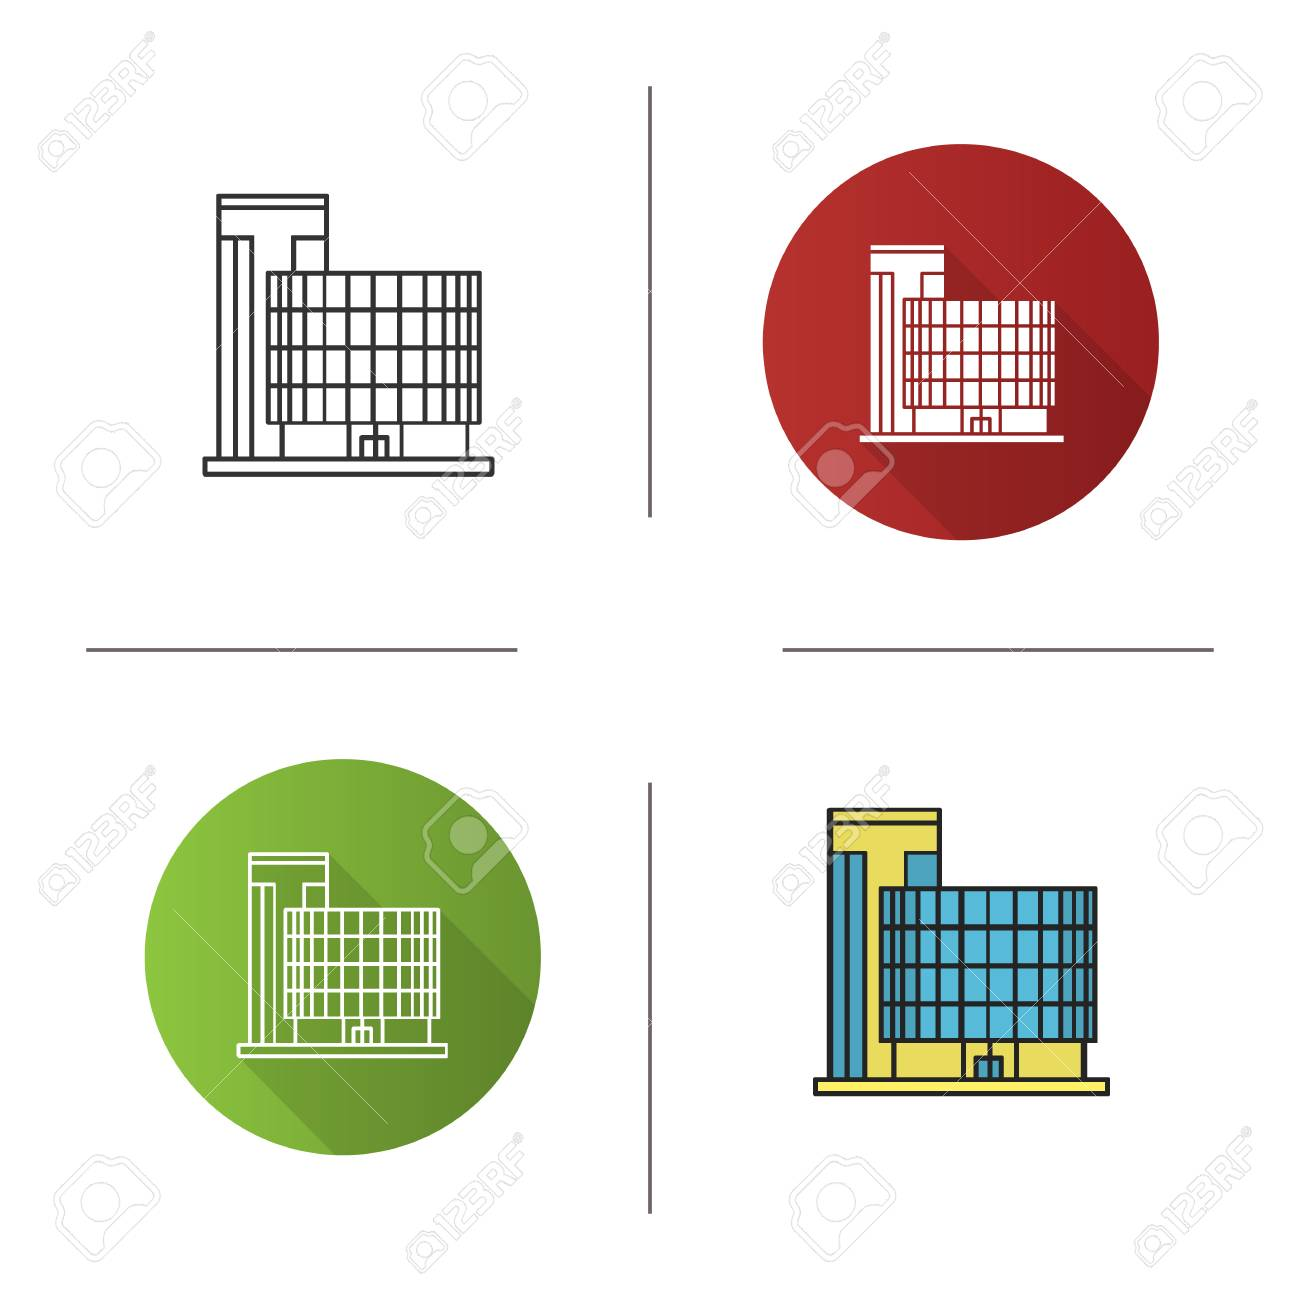 Office Building Icon Flat Design Linear And Color Styles Isolated